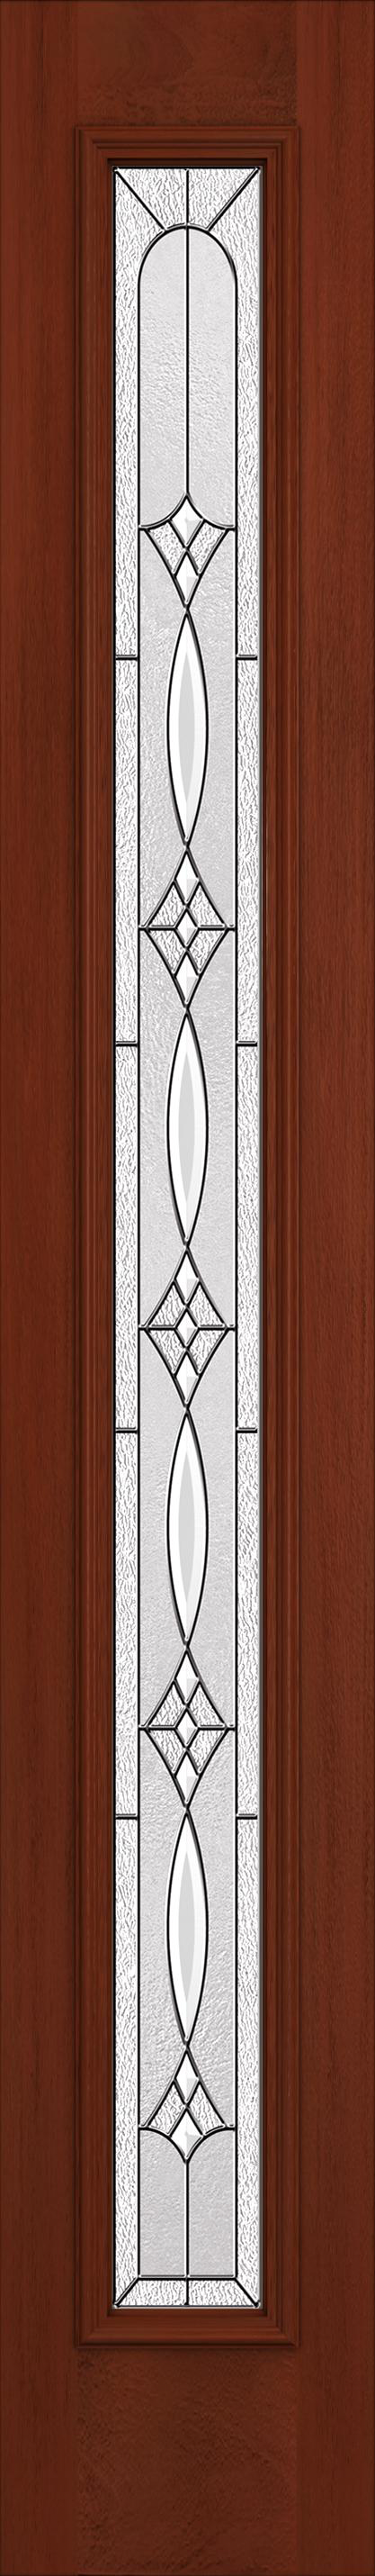 Sidelights _ Design-Pro Fibergl Gl Panel Exterior Door | JELD ... on bottom door sweeps for exterior doors, andersen exterior doors, marvin exterior doors, pella exterior doors, jeld wen sliding doors, nice doors,